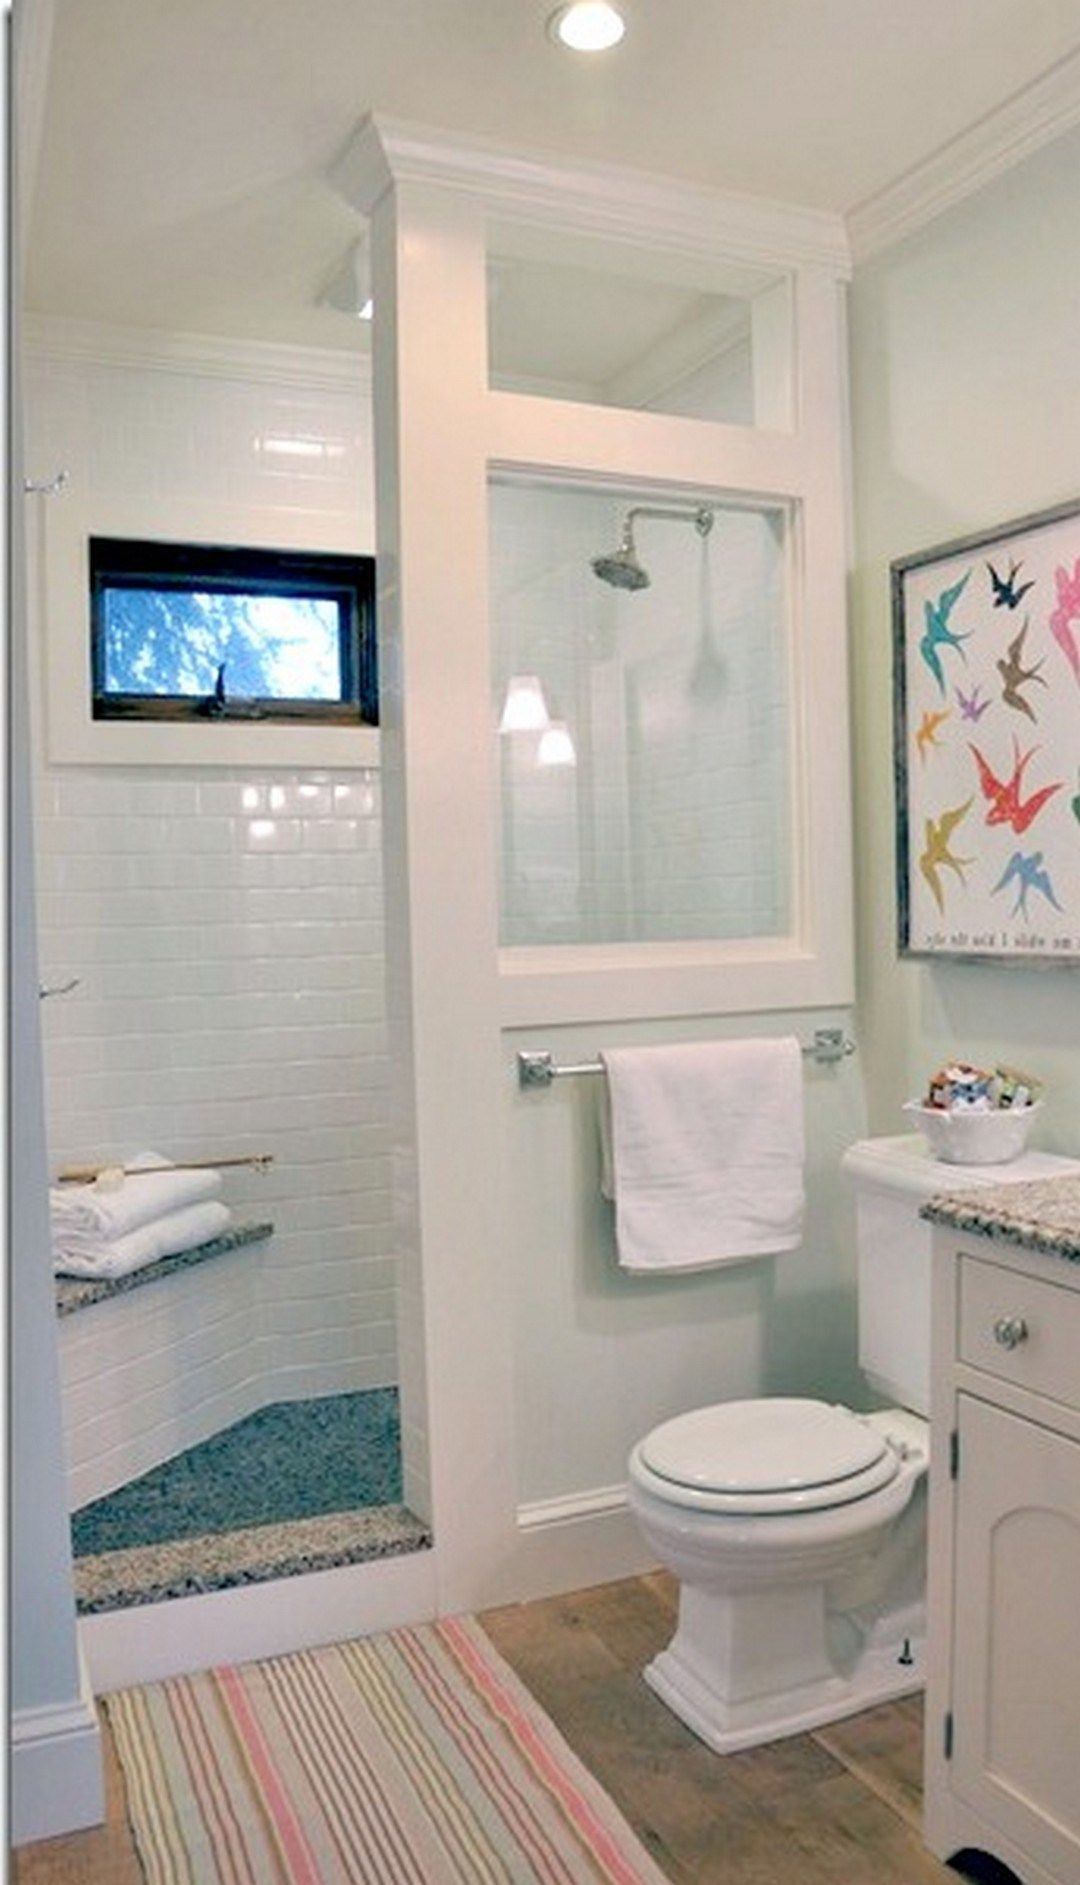 Small Bathroom Designs On A Budget Extraordinary 99 Small Master Bathroom Makeover Ideas On A Budget 76  Clean Decorating Inspiration